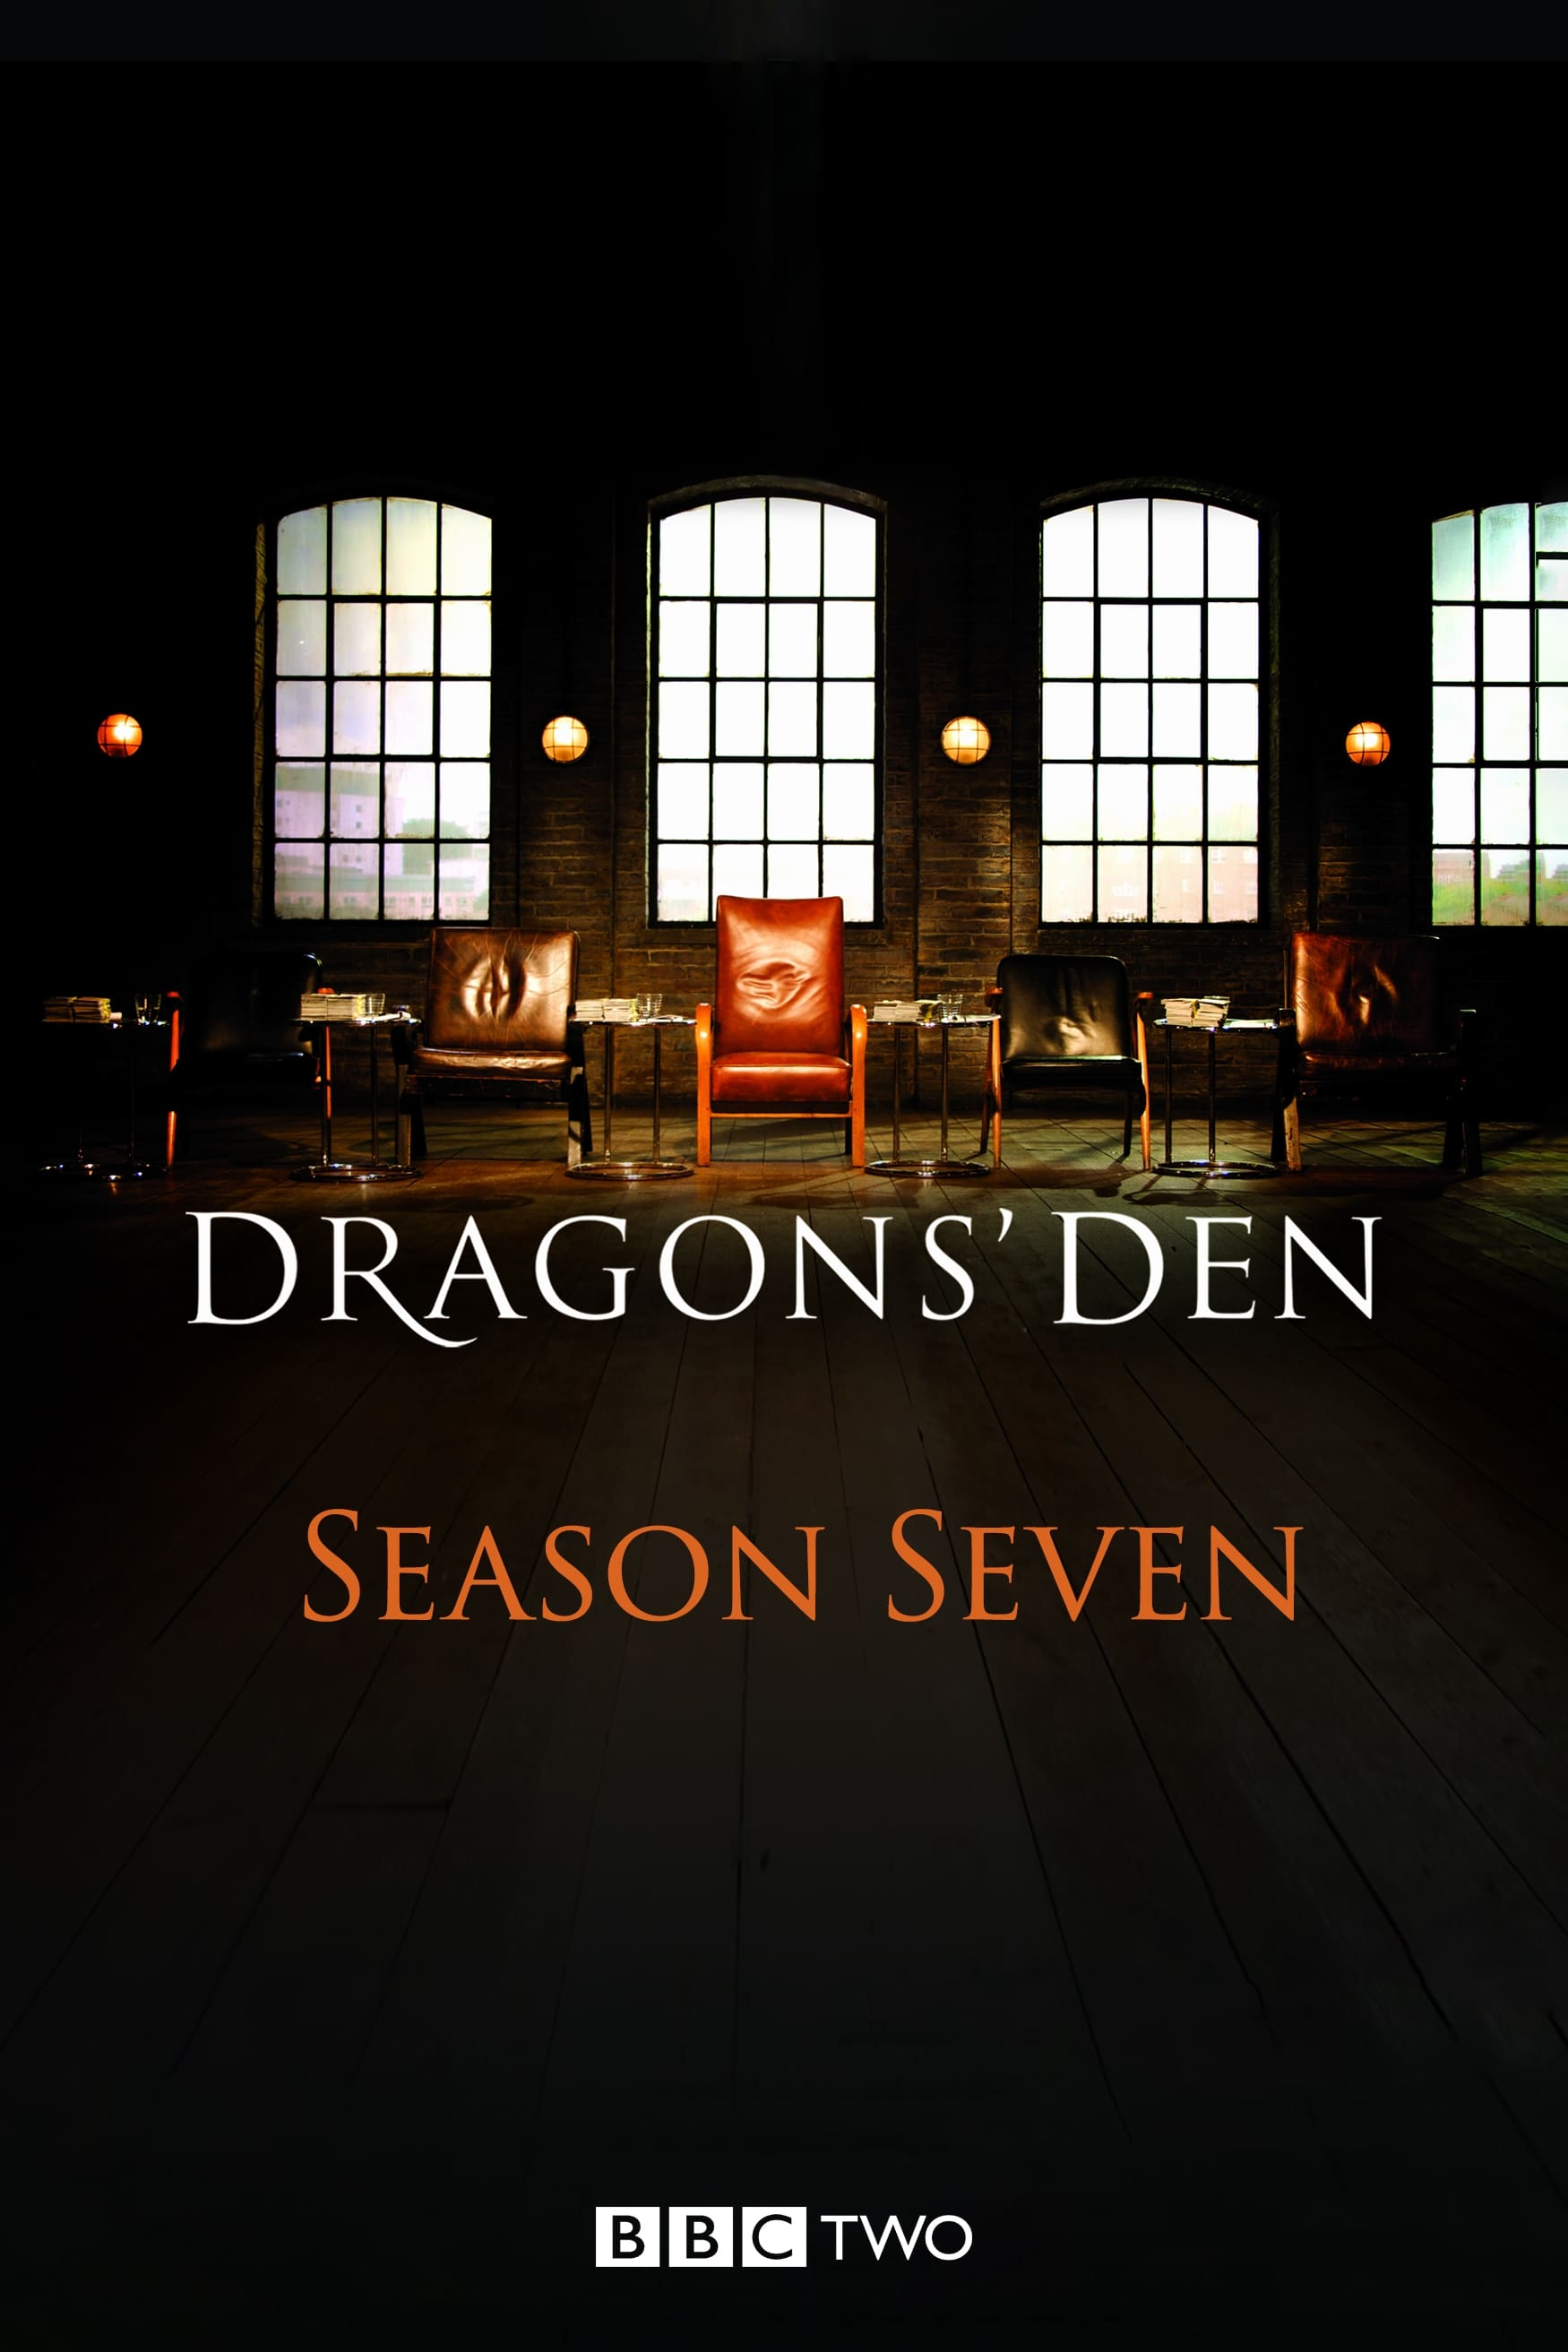 Dragons' Den Season 7